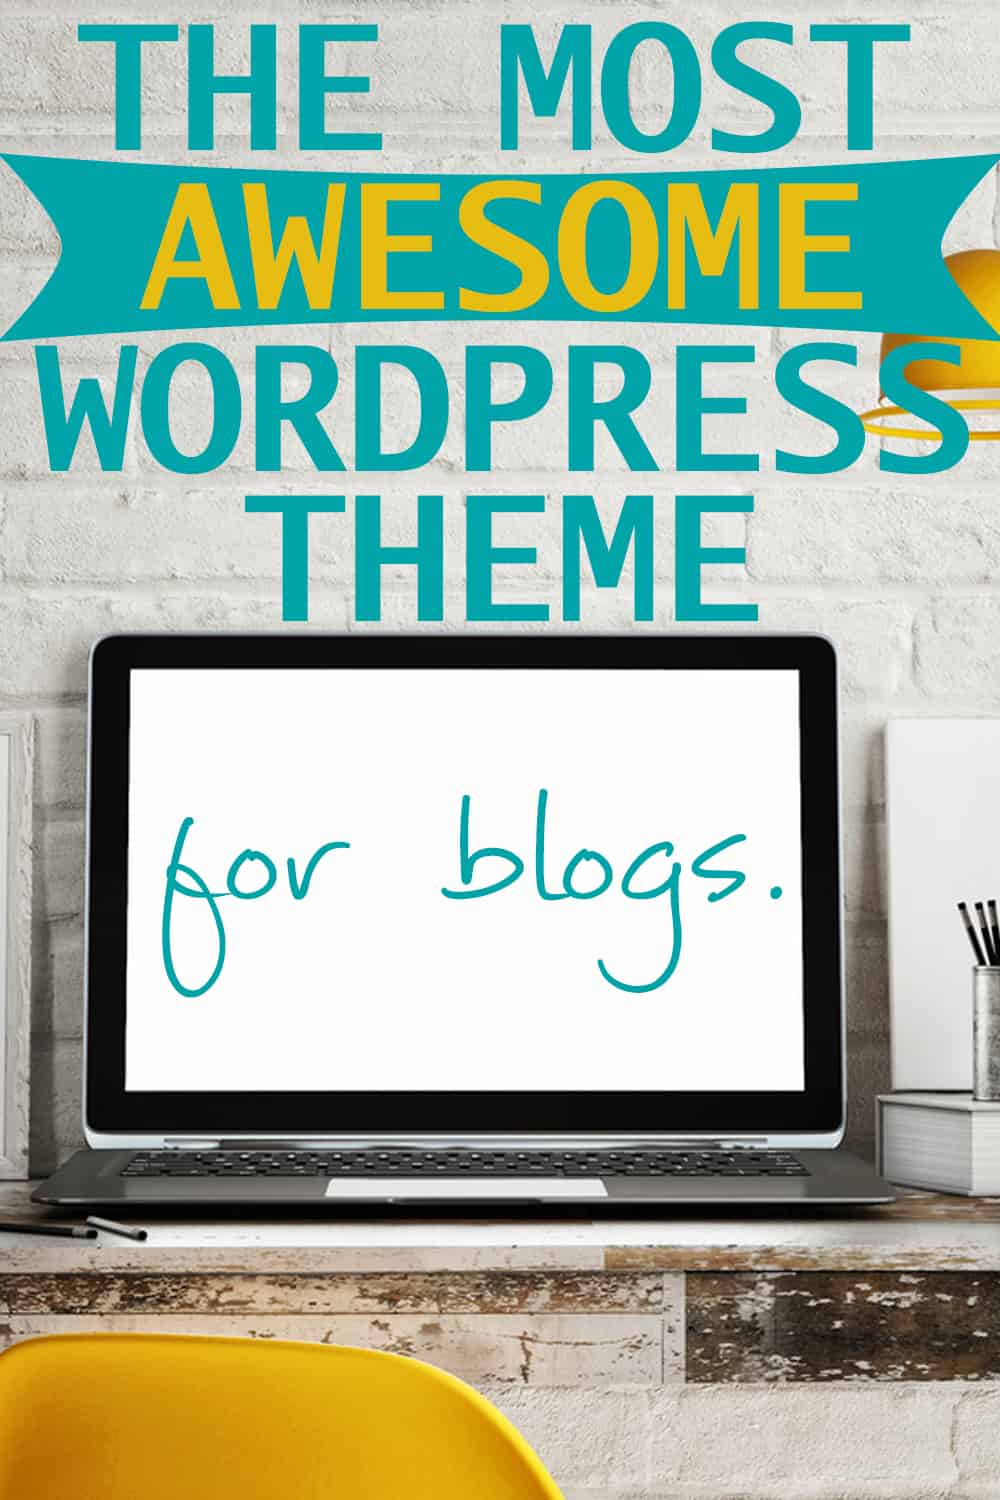 how to choose the BEST WordPress theme for blogging - beginner friendly suggestions!